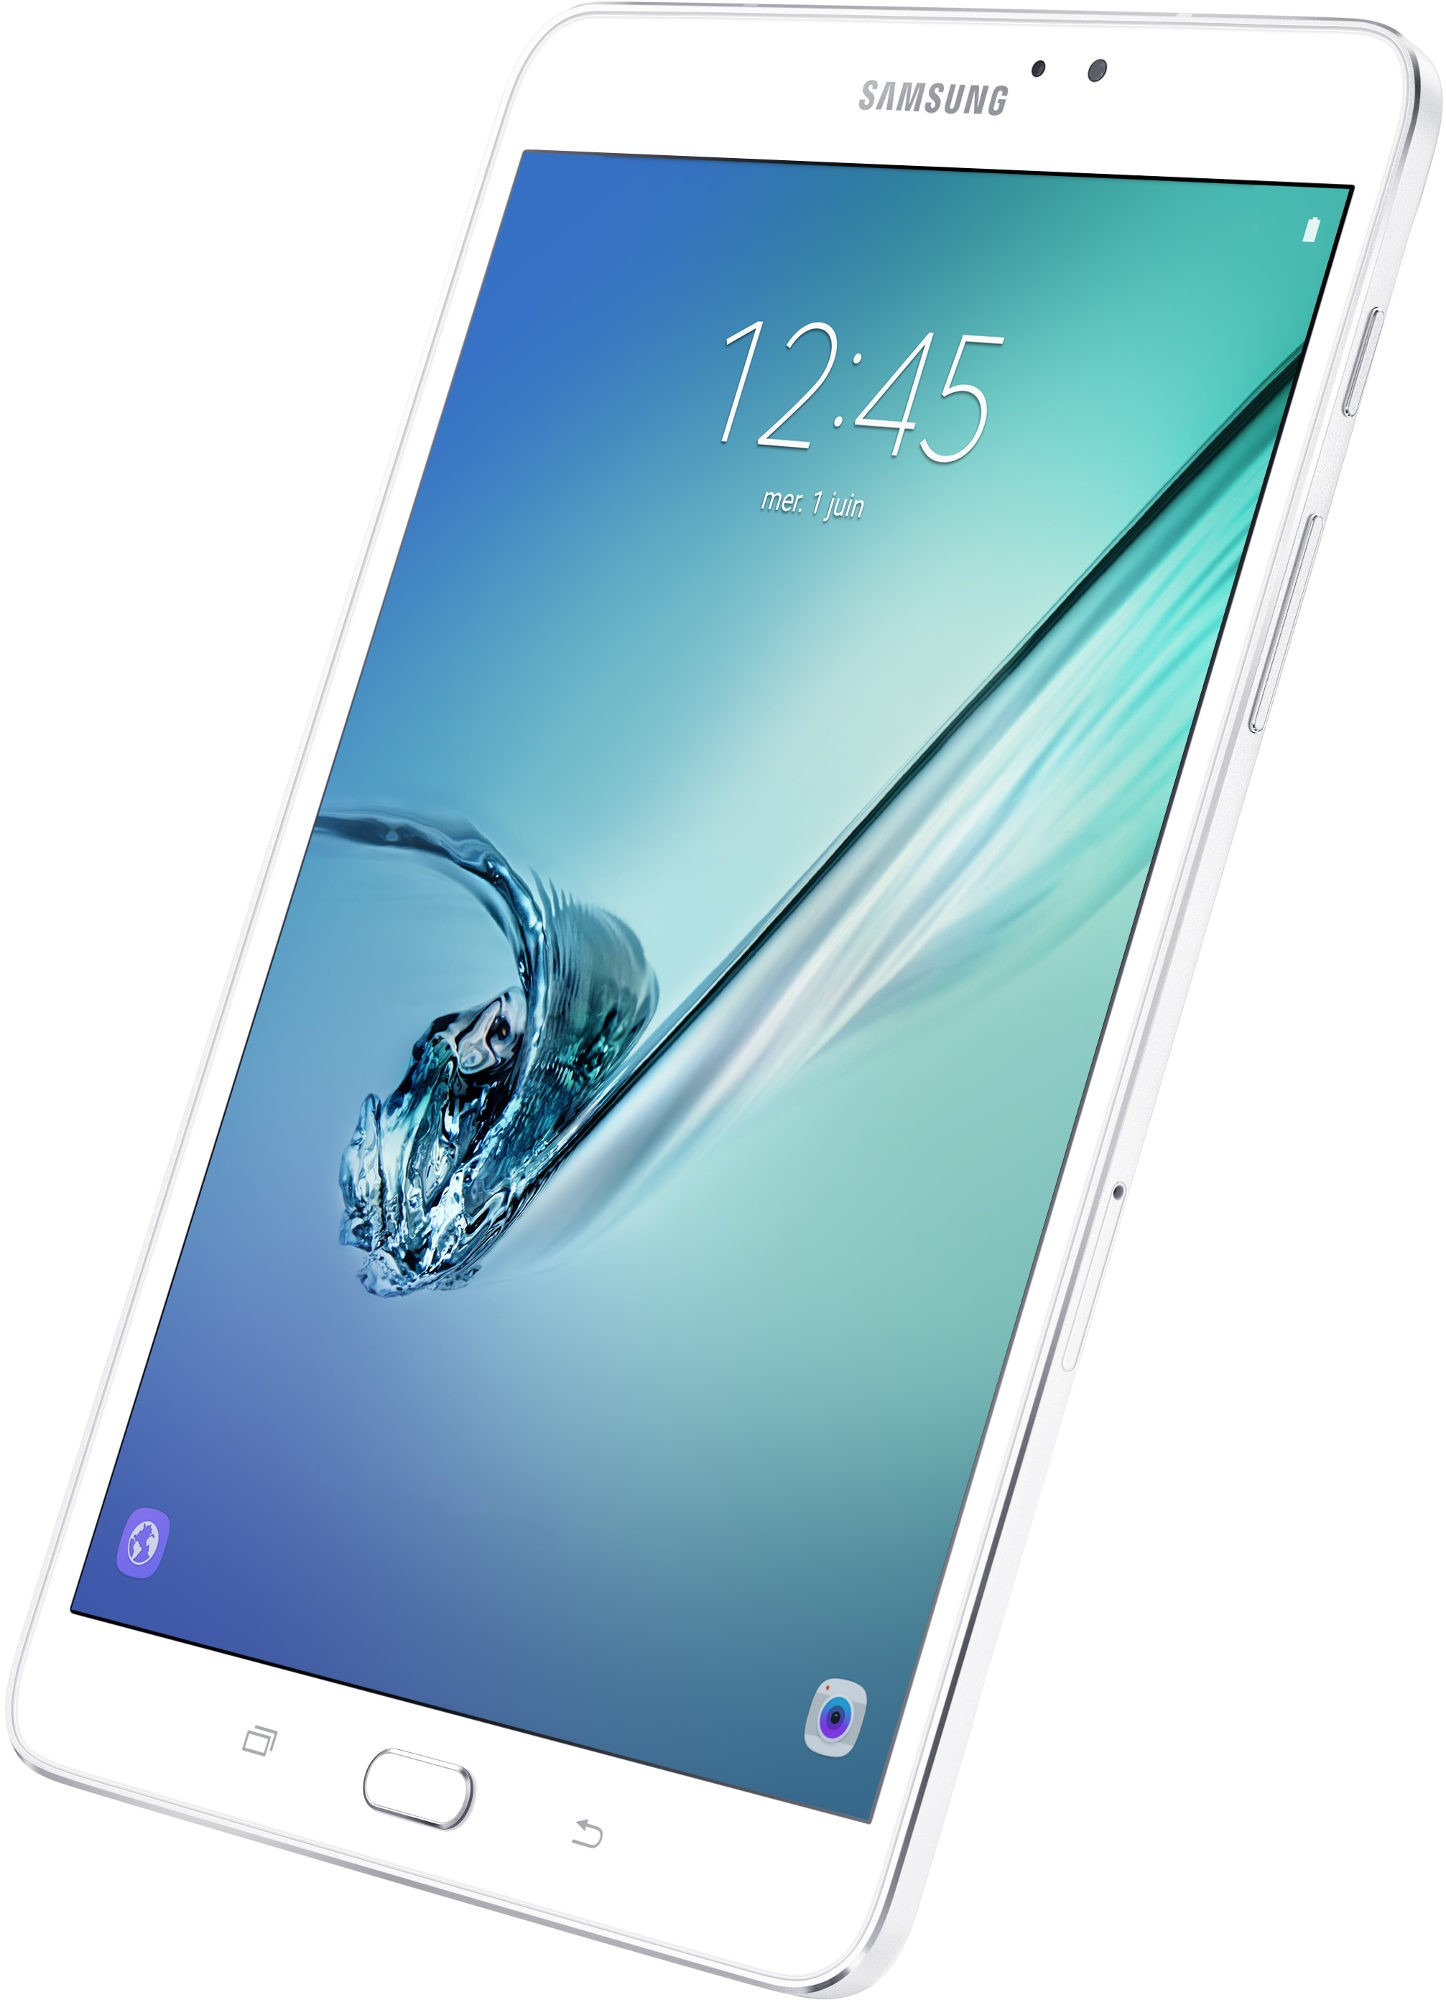 Samsung - Galaxy Tab S2 - 8 pouces - Blanc - Android 6.0 Marshmallow (SMT 713 NZWEXEF)